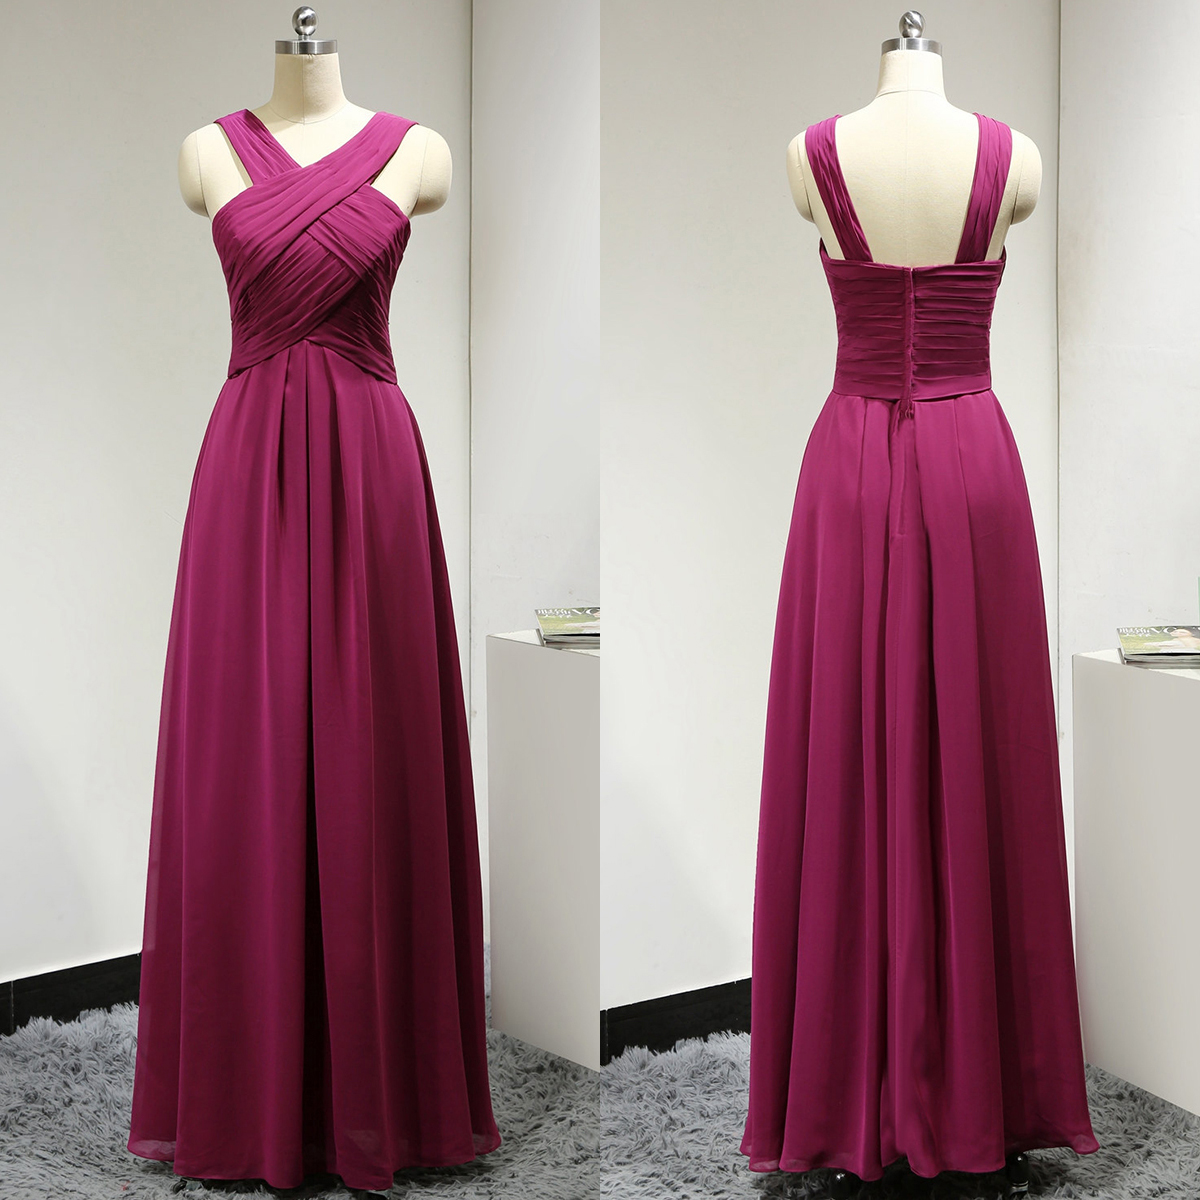 Halter a line bridesmaid dress with ruching detail v neck light halter a line bridesmaid dress with ruching detail v neck light purple bridesmaid ombrellifo Image collections